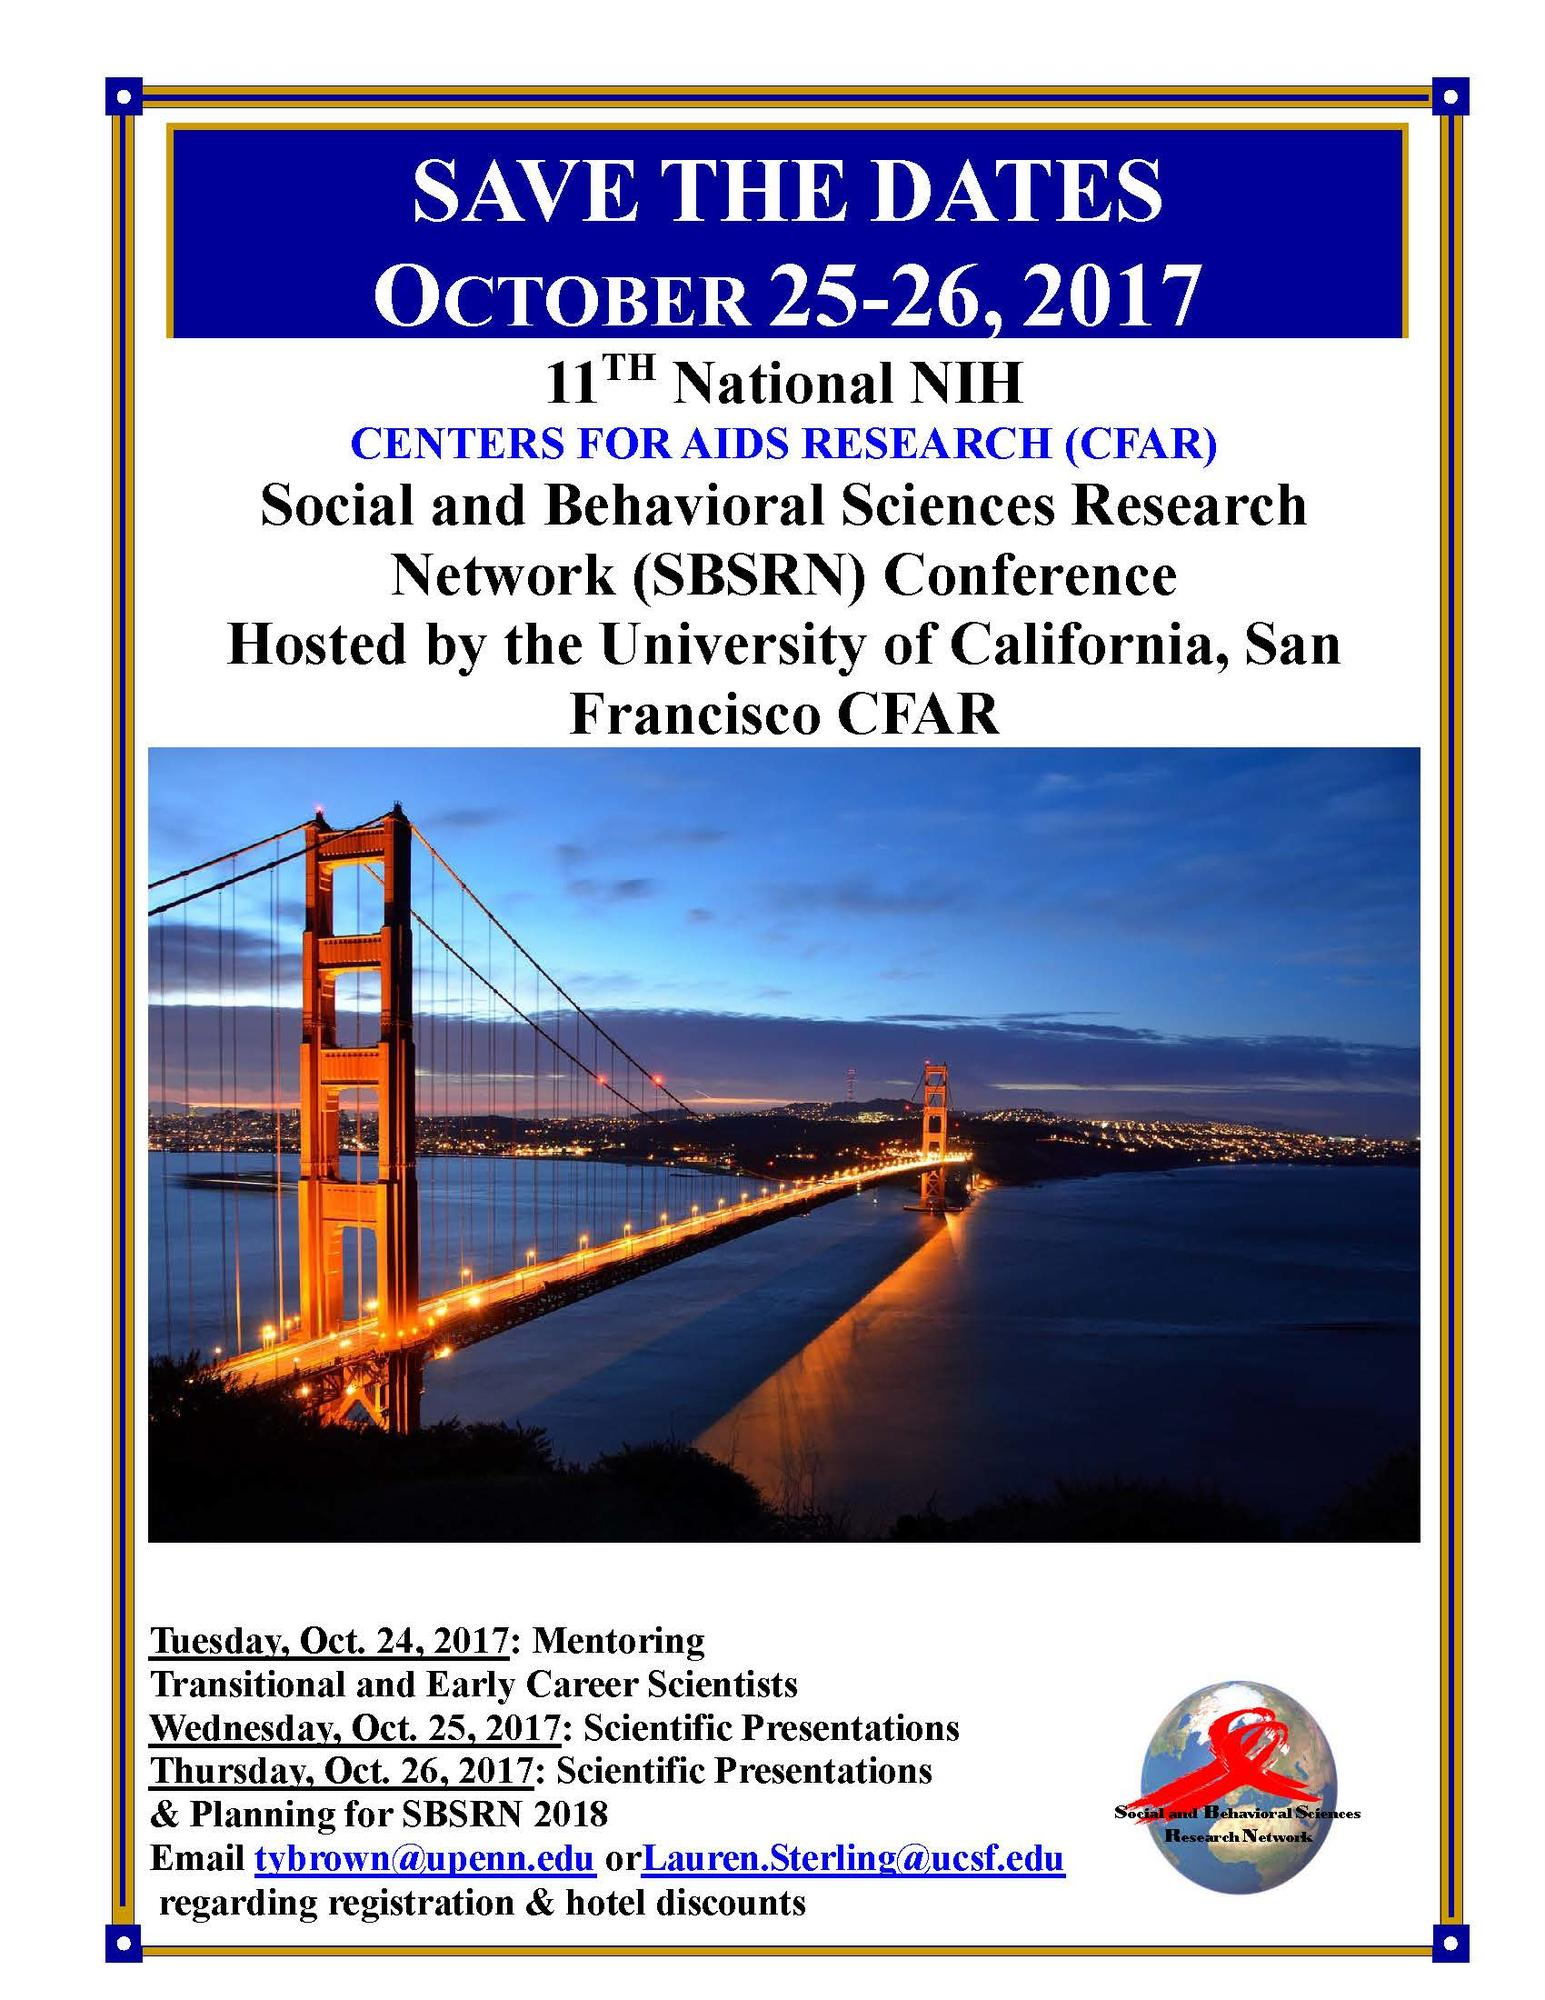 CFAR Social and Behavioral Sciences Research Network (SBSRN